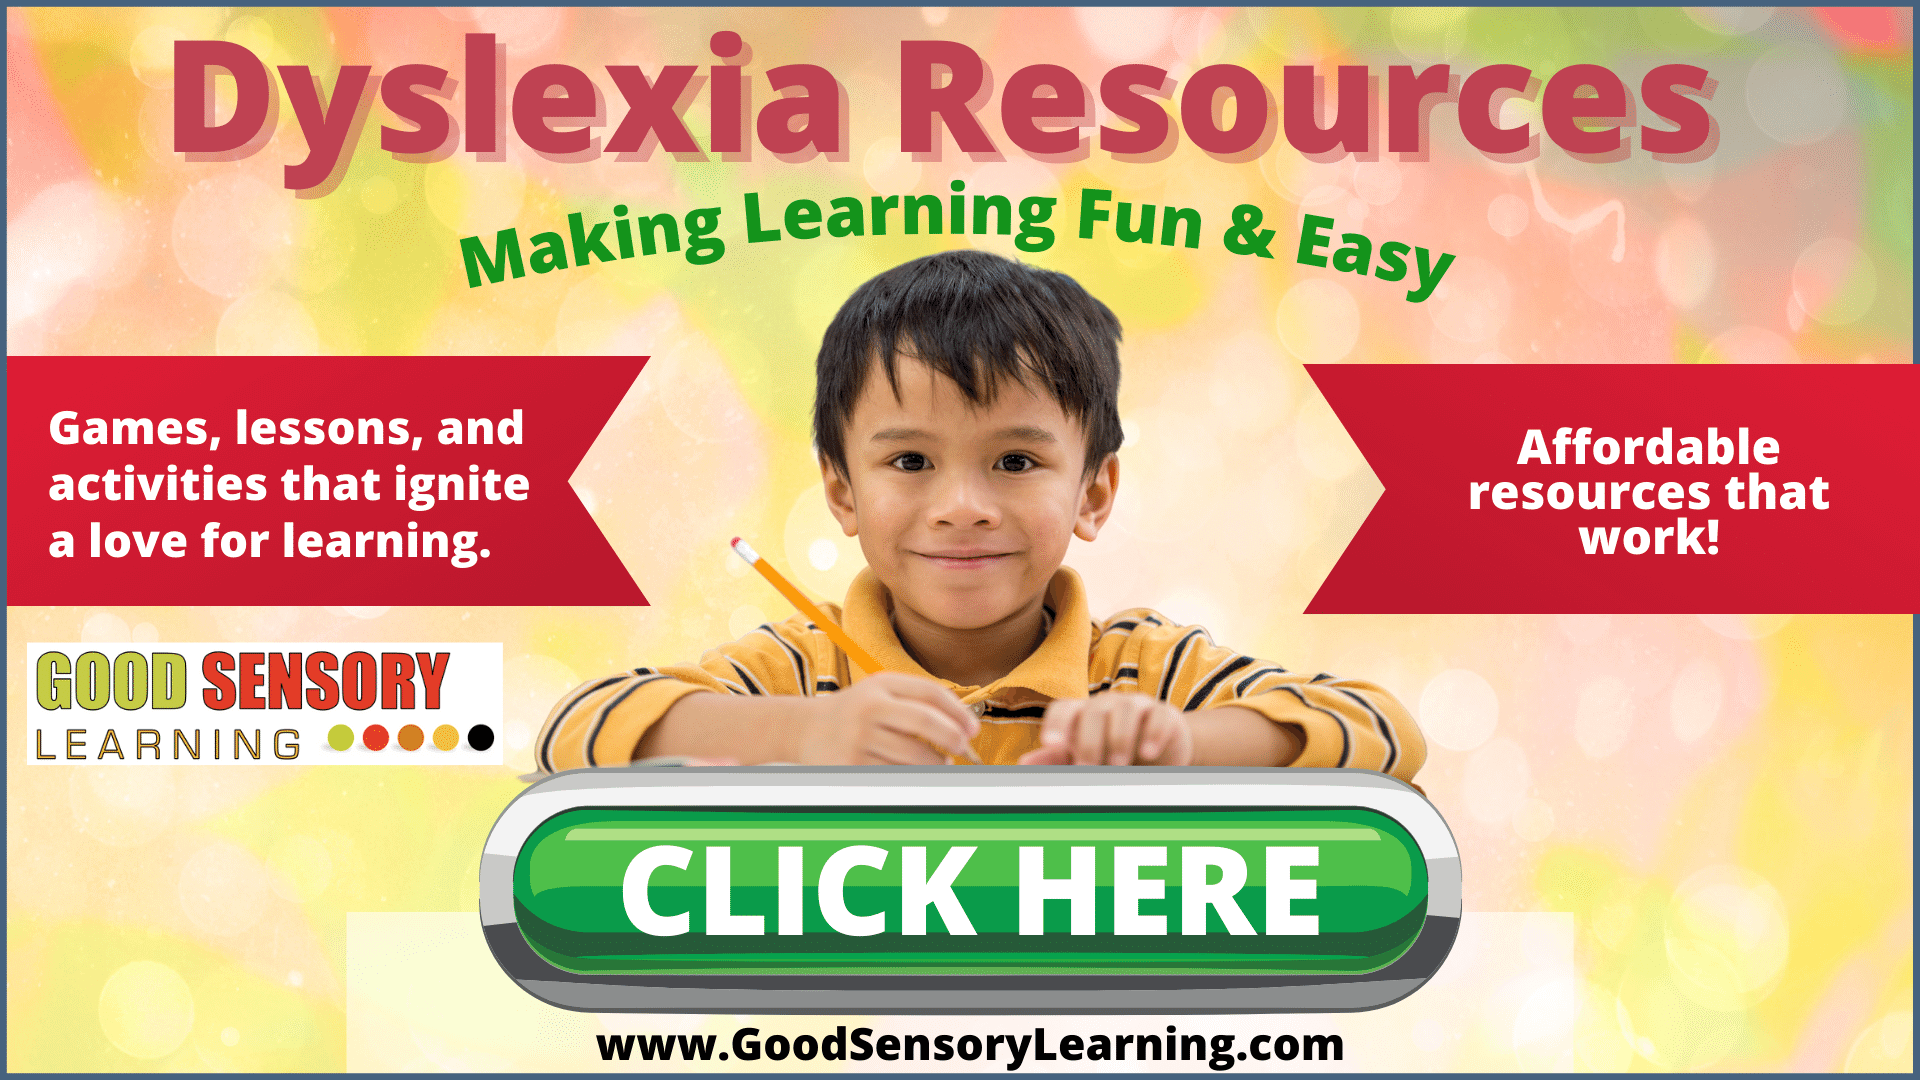 Happy student with dyslexia